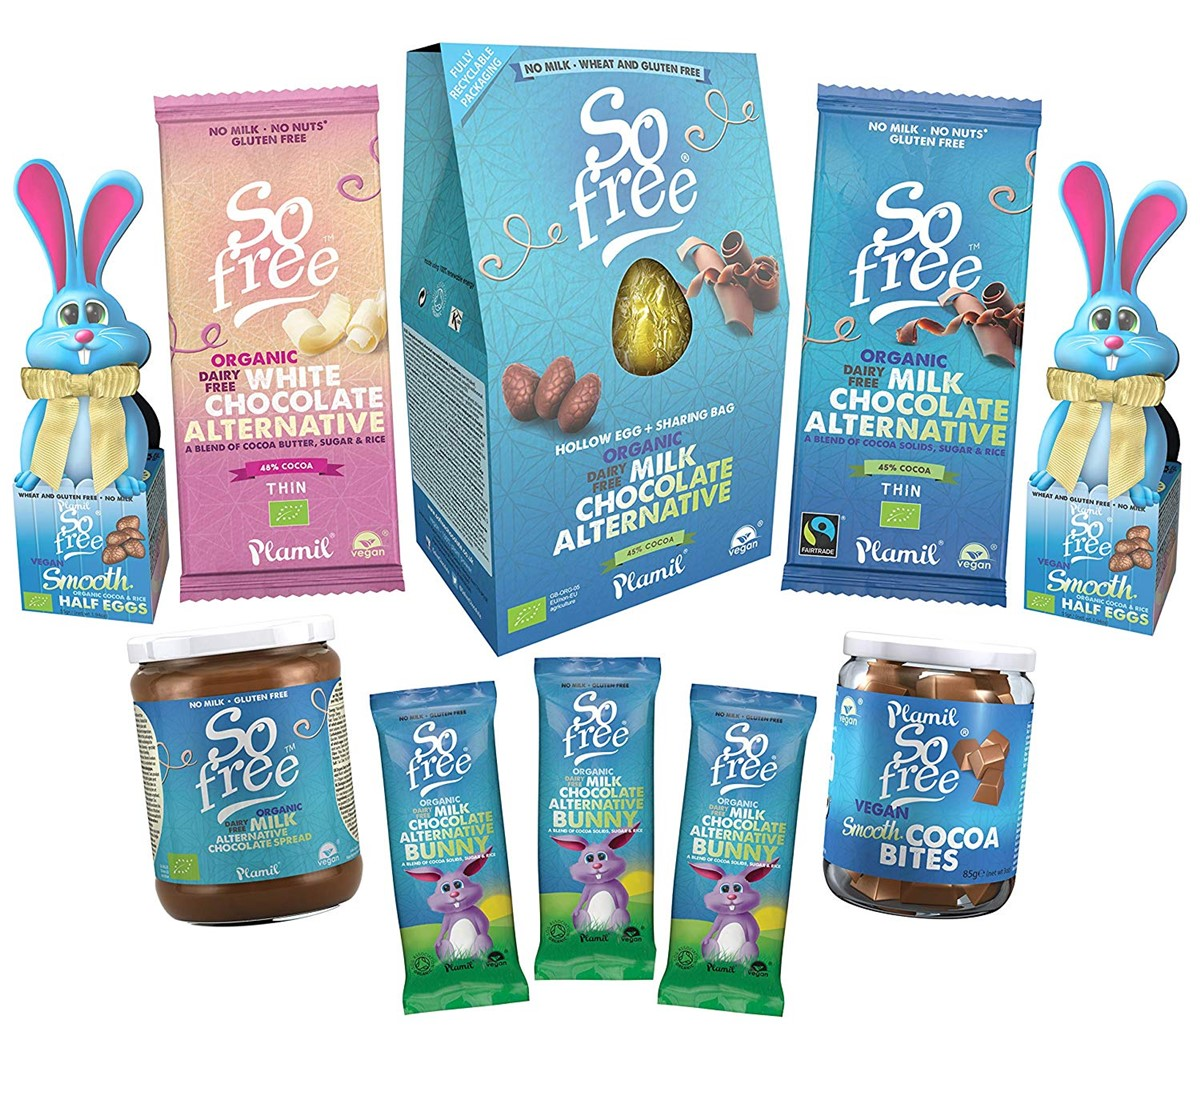 Dairy-Free Easter Chocolate in Australia, the UK and the rest of Europe - most options are vegan and gluten-free, some soy-free and nut-free, too! Pictured: Plamil So Free